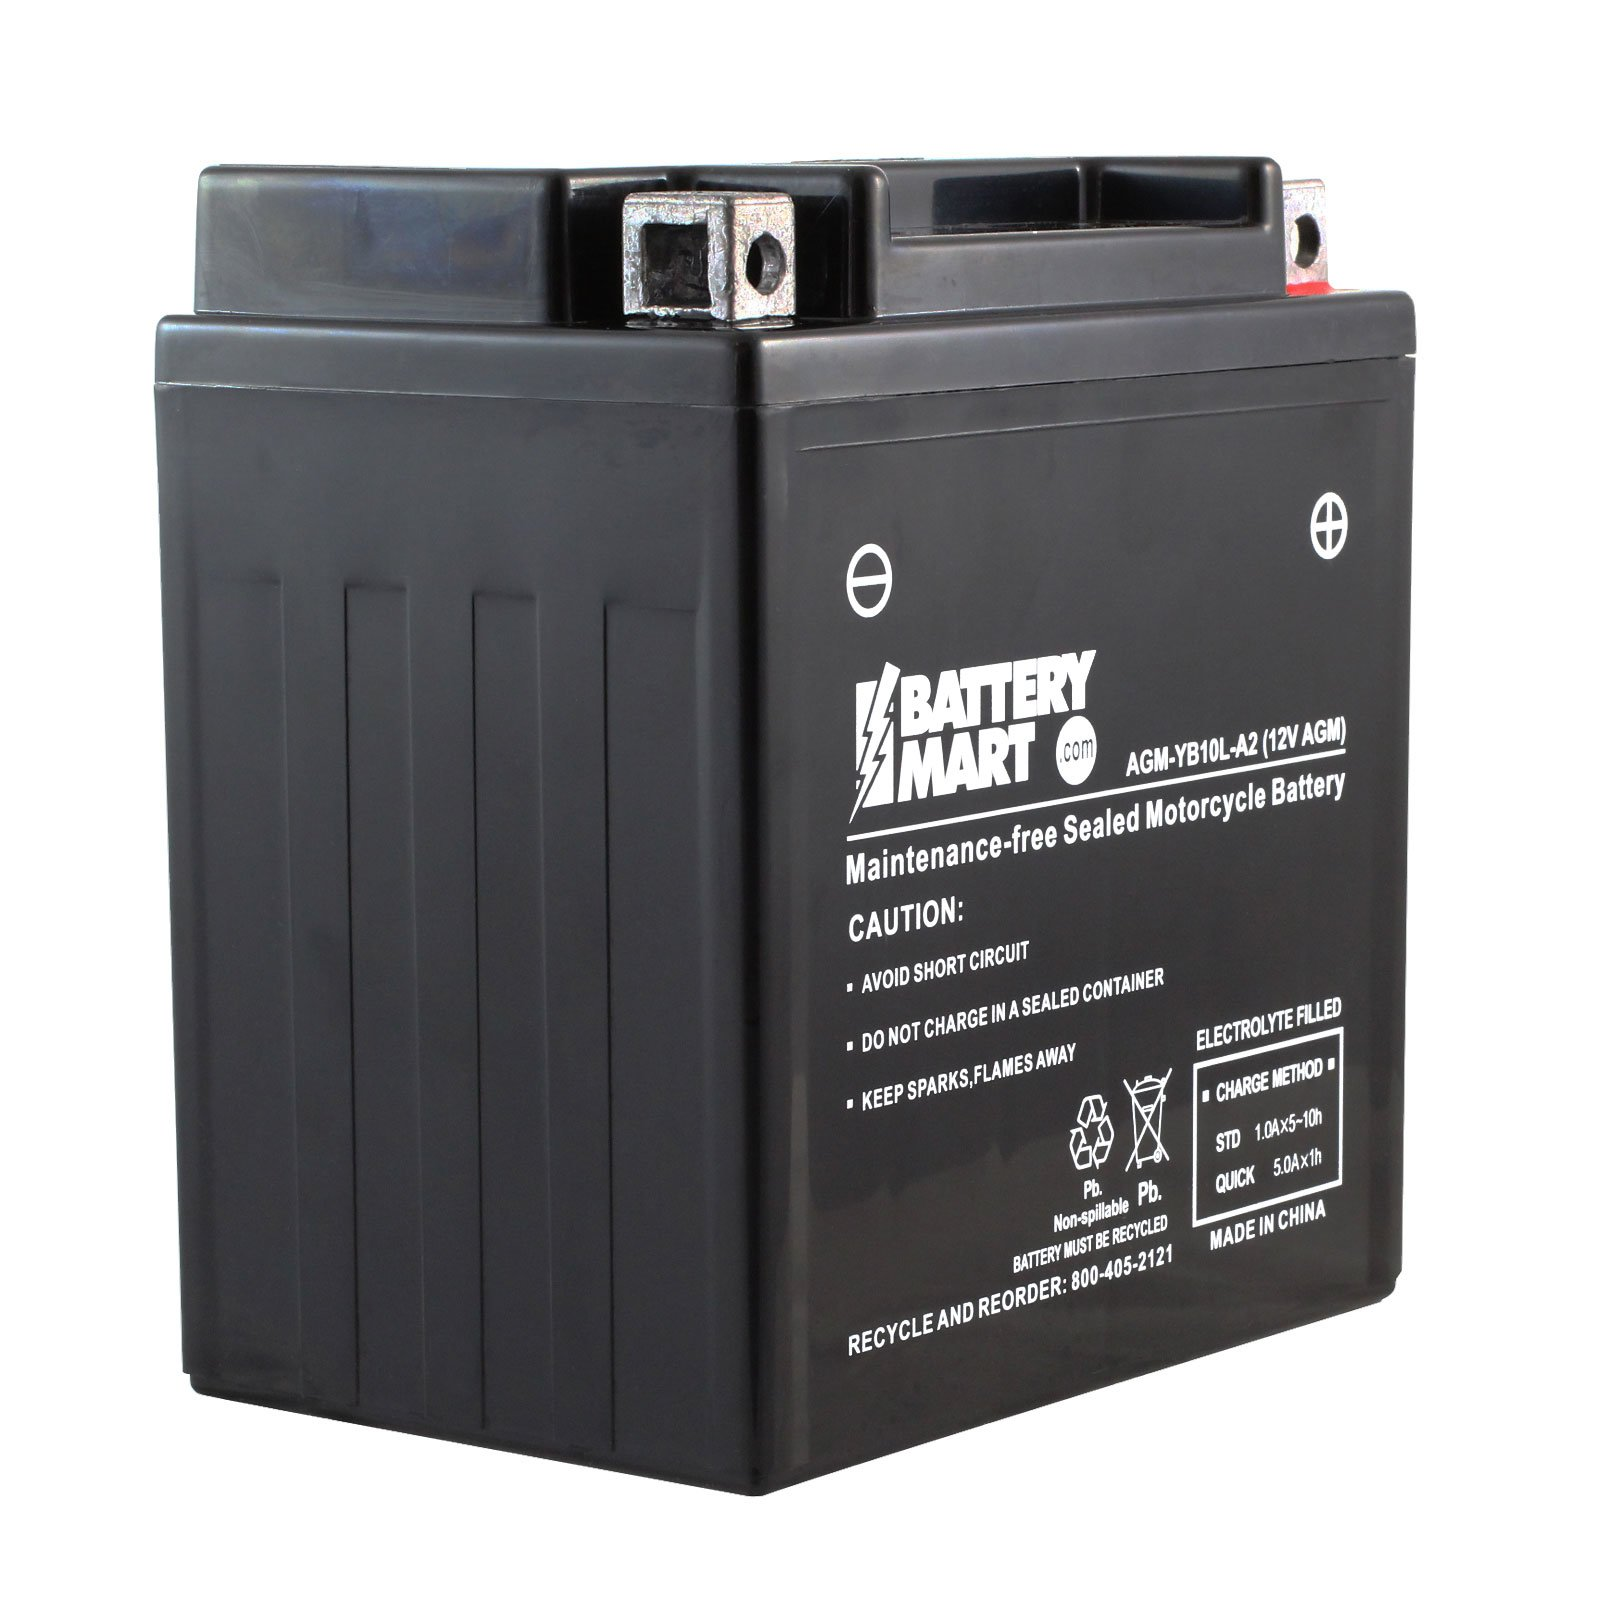 Yb10l A2 Agm Maintenance Free Battery 12 Volt 10 Ah